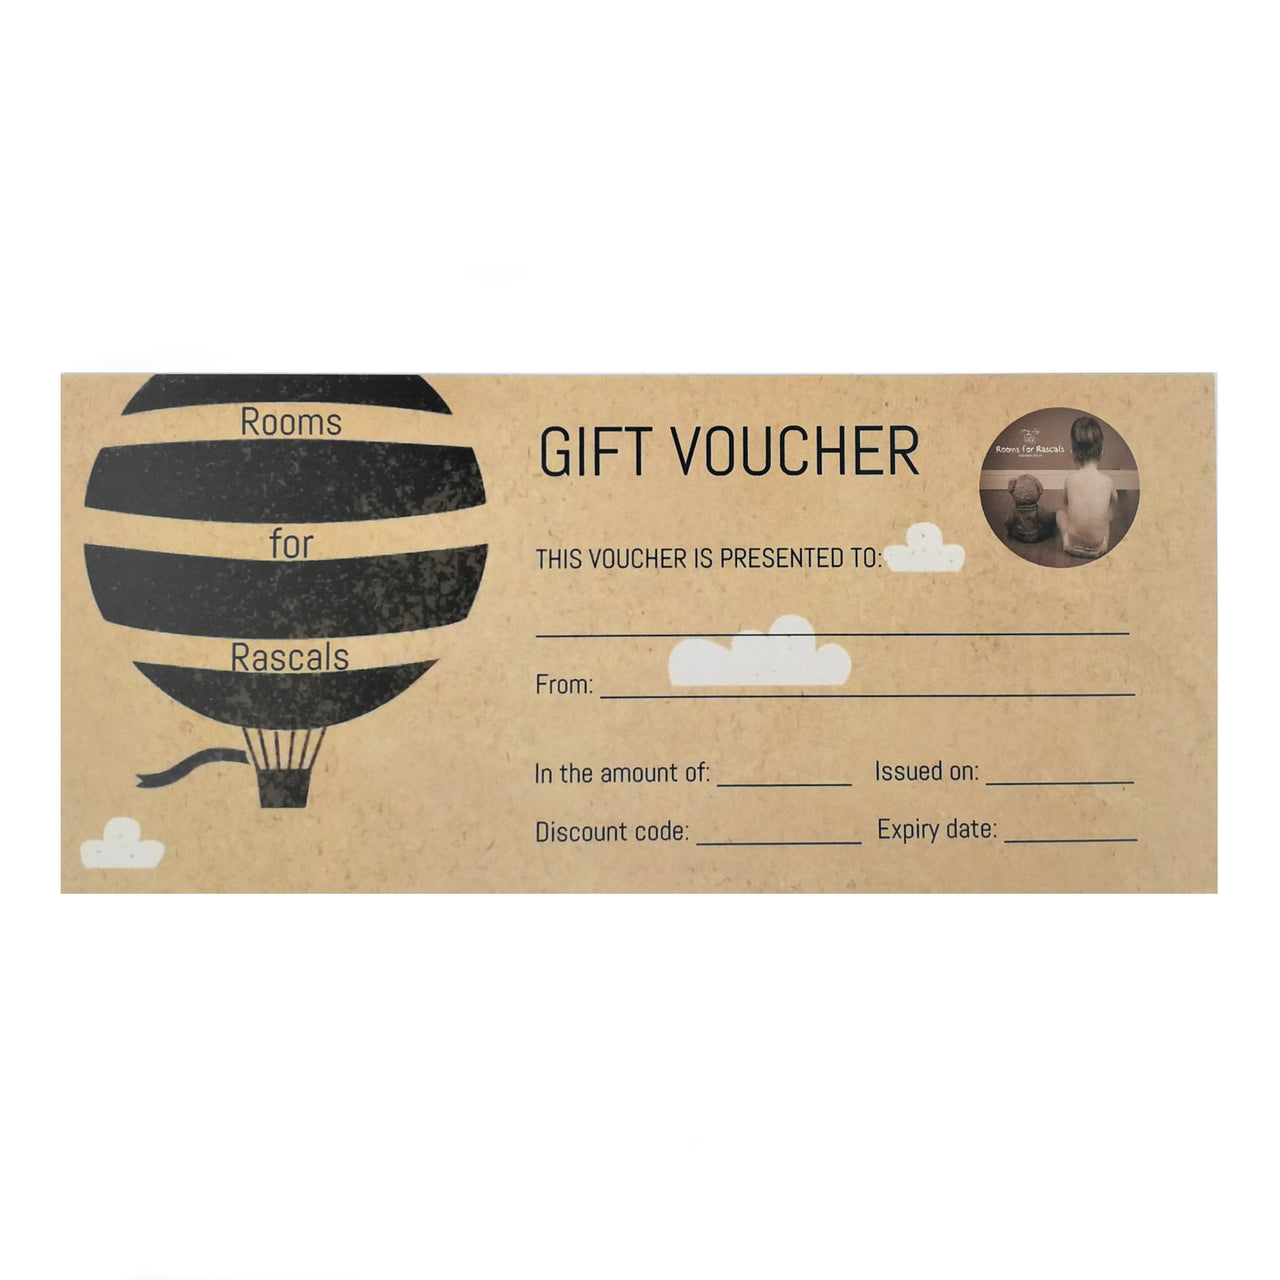 Gift Voucher - Kids Room Decor | Toys Gifts | Childrens Interiors | Rooms for Rascals